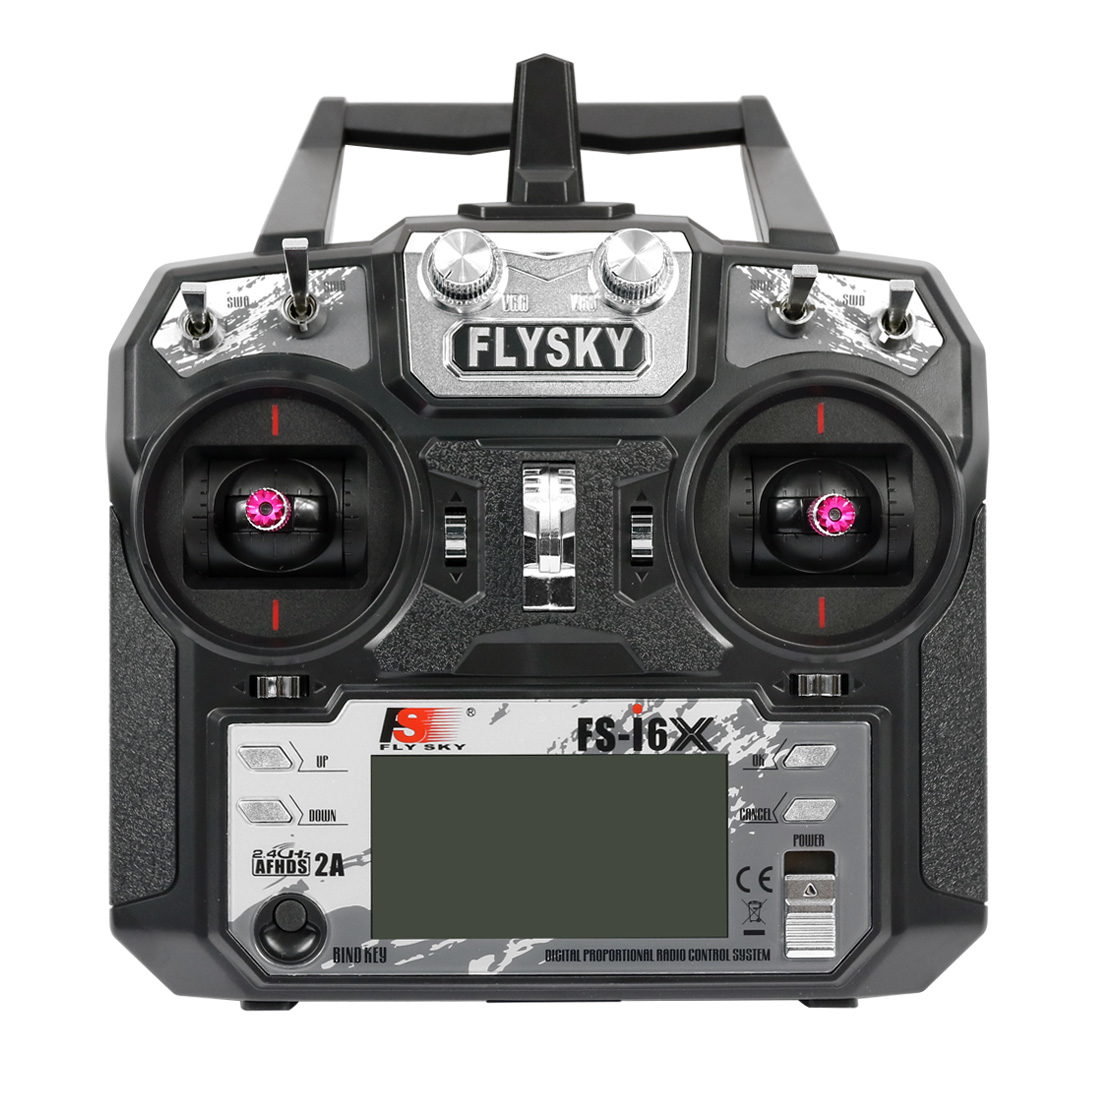 Original Flysky FS i6X 2 4G 6CH Transmitter TX For Helicopter Fixed wing Glider Multi axis